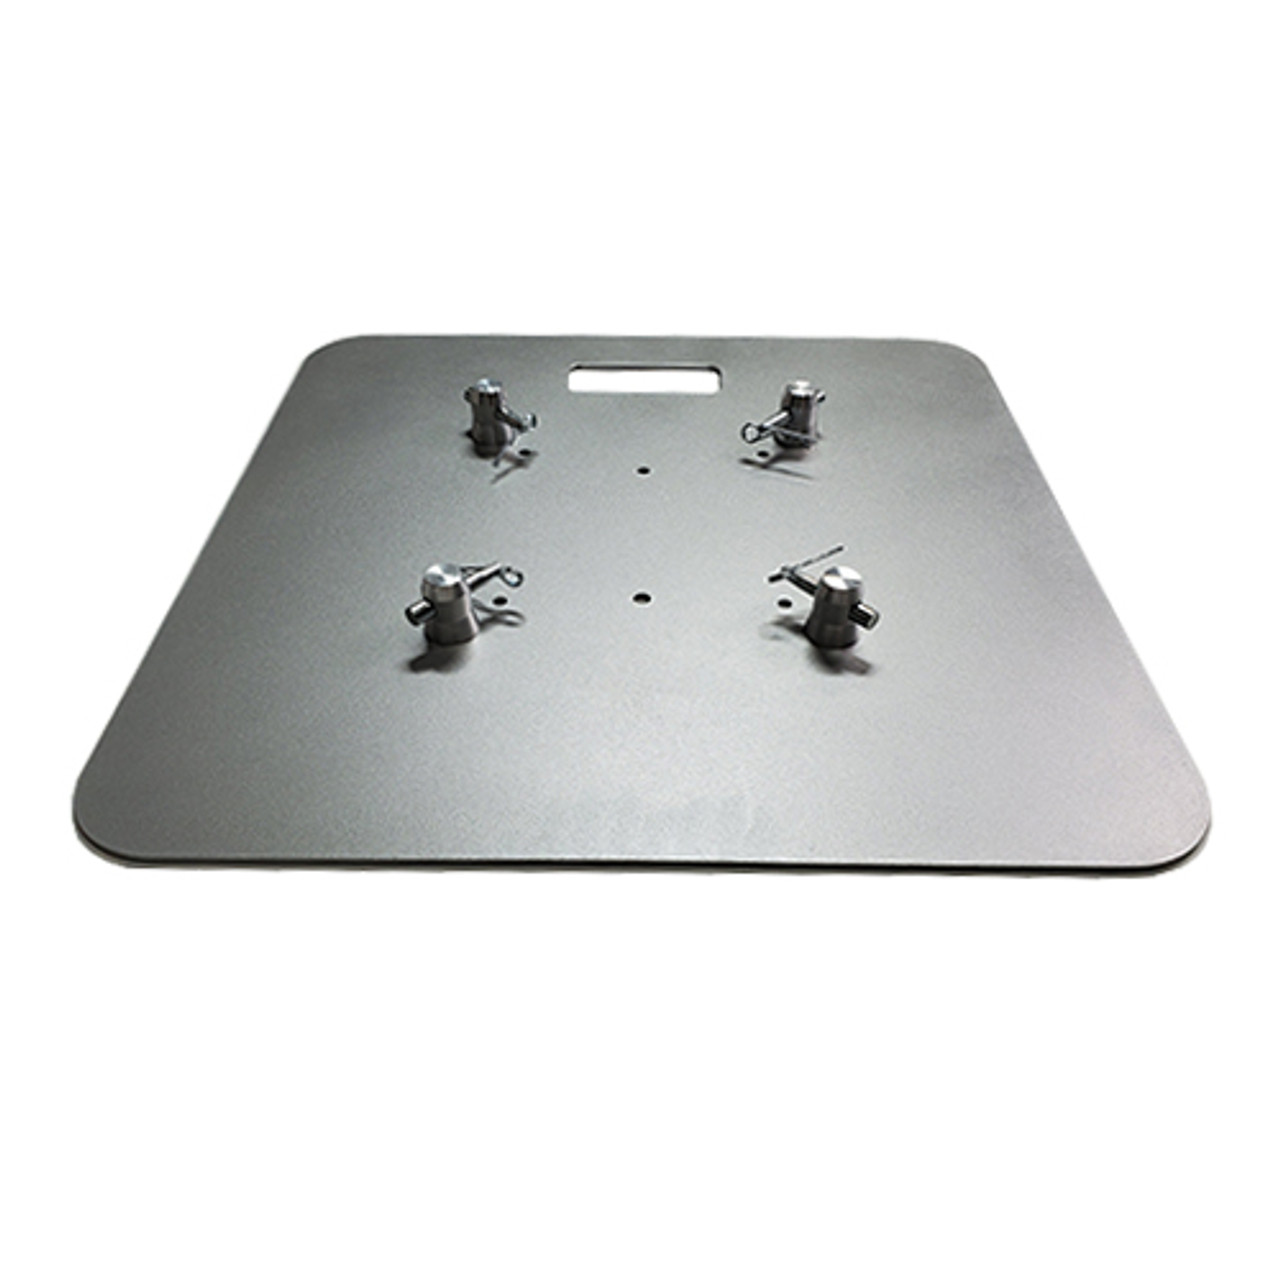 """Top Selling 24"""" x 24"""" Silver Steel Truss Base Plate. Fits Global Truss F23 F24 F33 F34 and Others. Shipping included! Main view."""